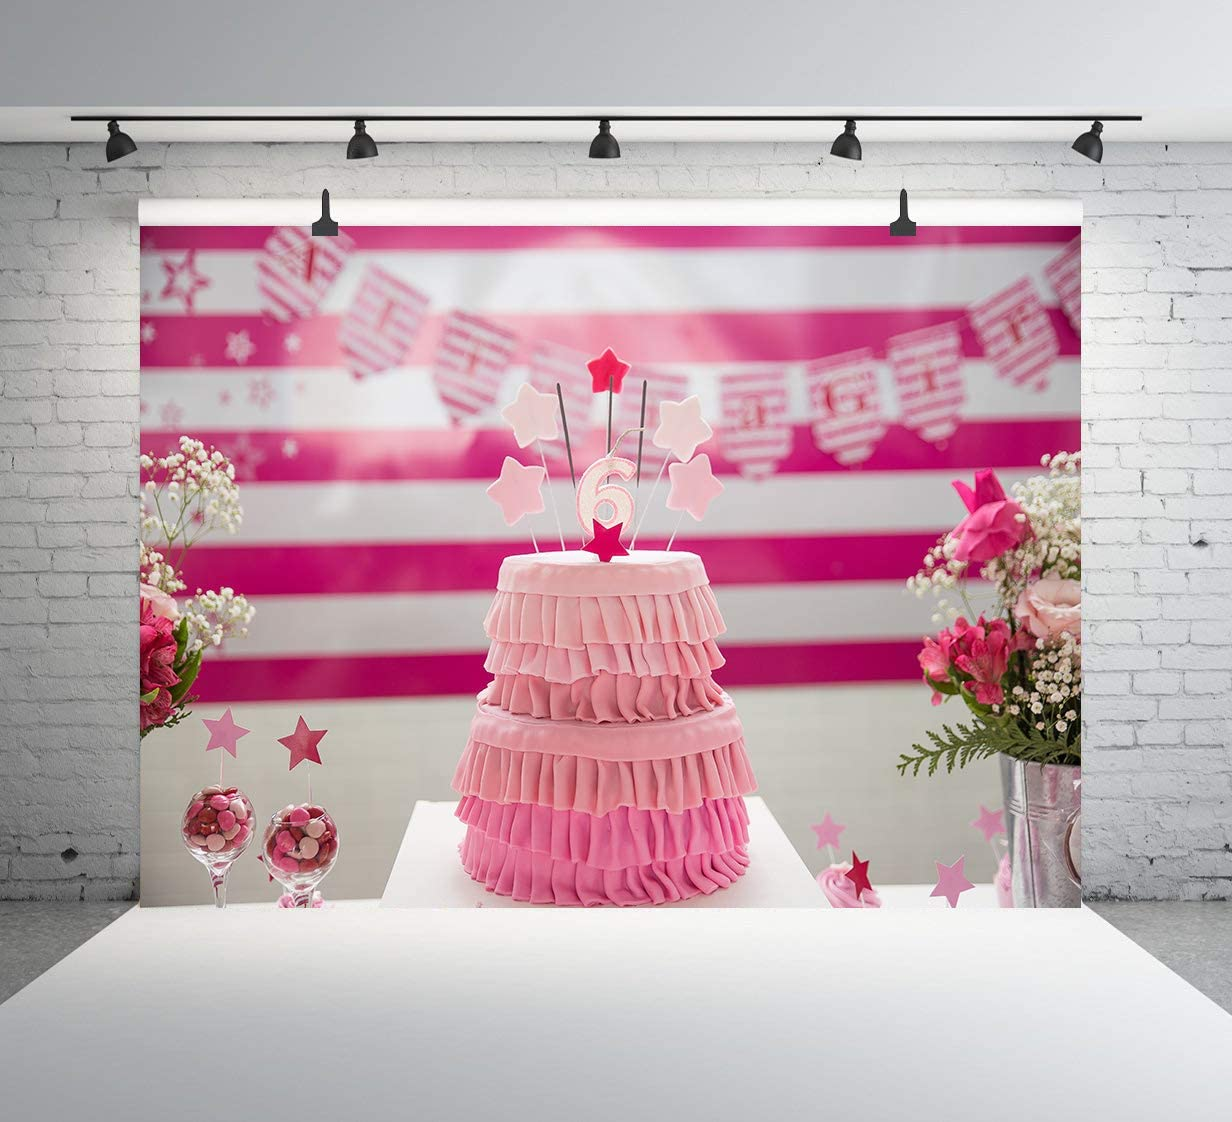 Cartoon Pink Cake Photography Background Sweet 6th Happy Birthday Backdrop Kids Children Birthday Party Celebration Cake Party Photo Booth Background Props 7x5FT E00T9128